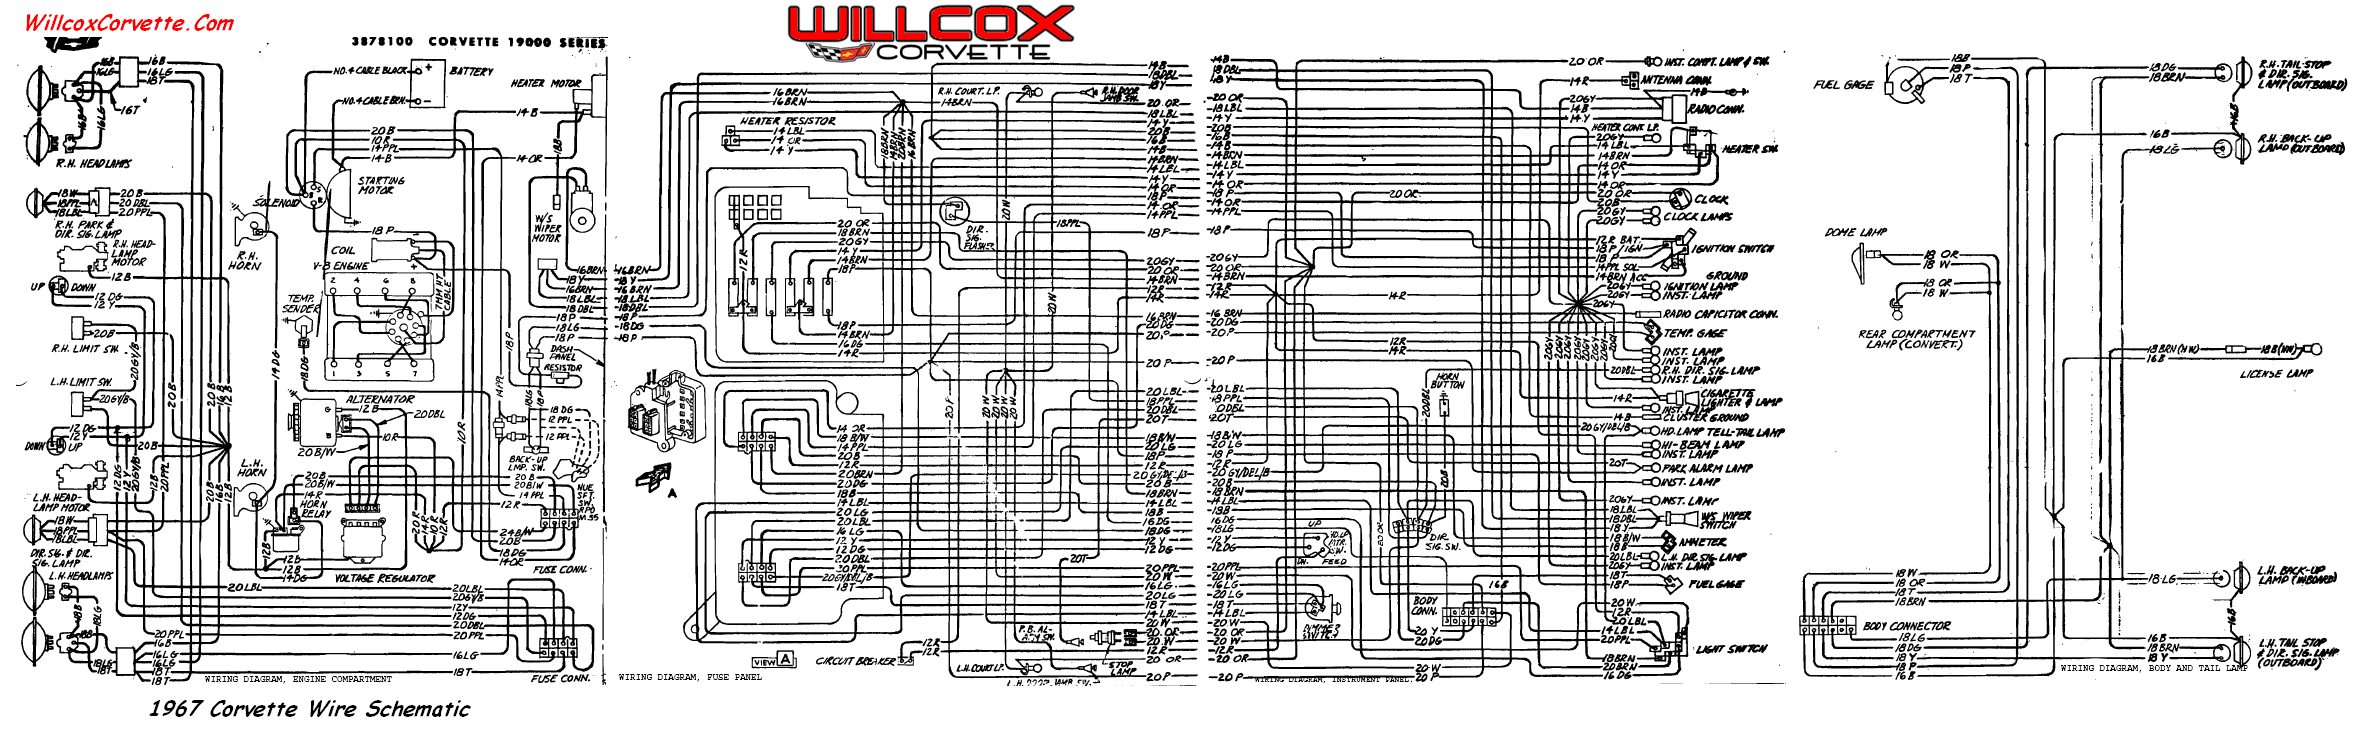 67 wire schematic for tracing wires wiring diagram for 1966 corvette readingrat net 66 Corvette at cos-gaming.co